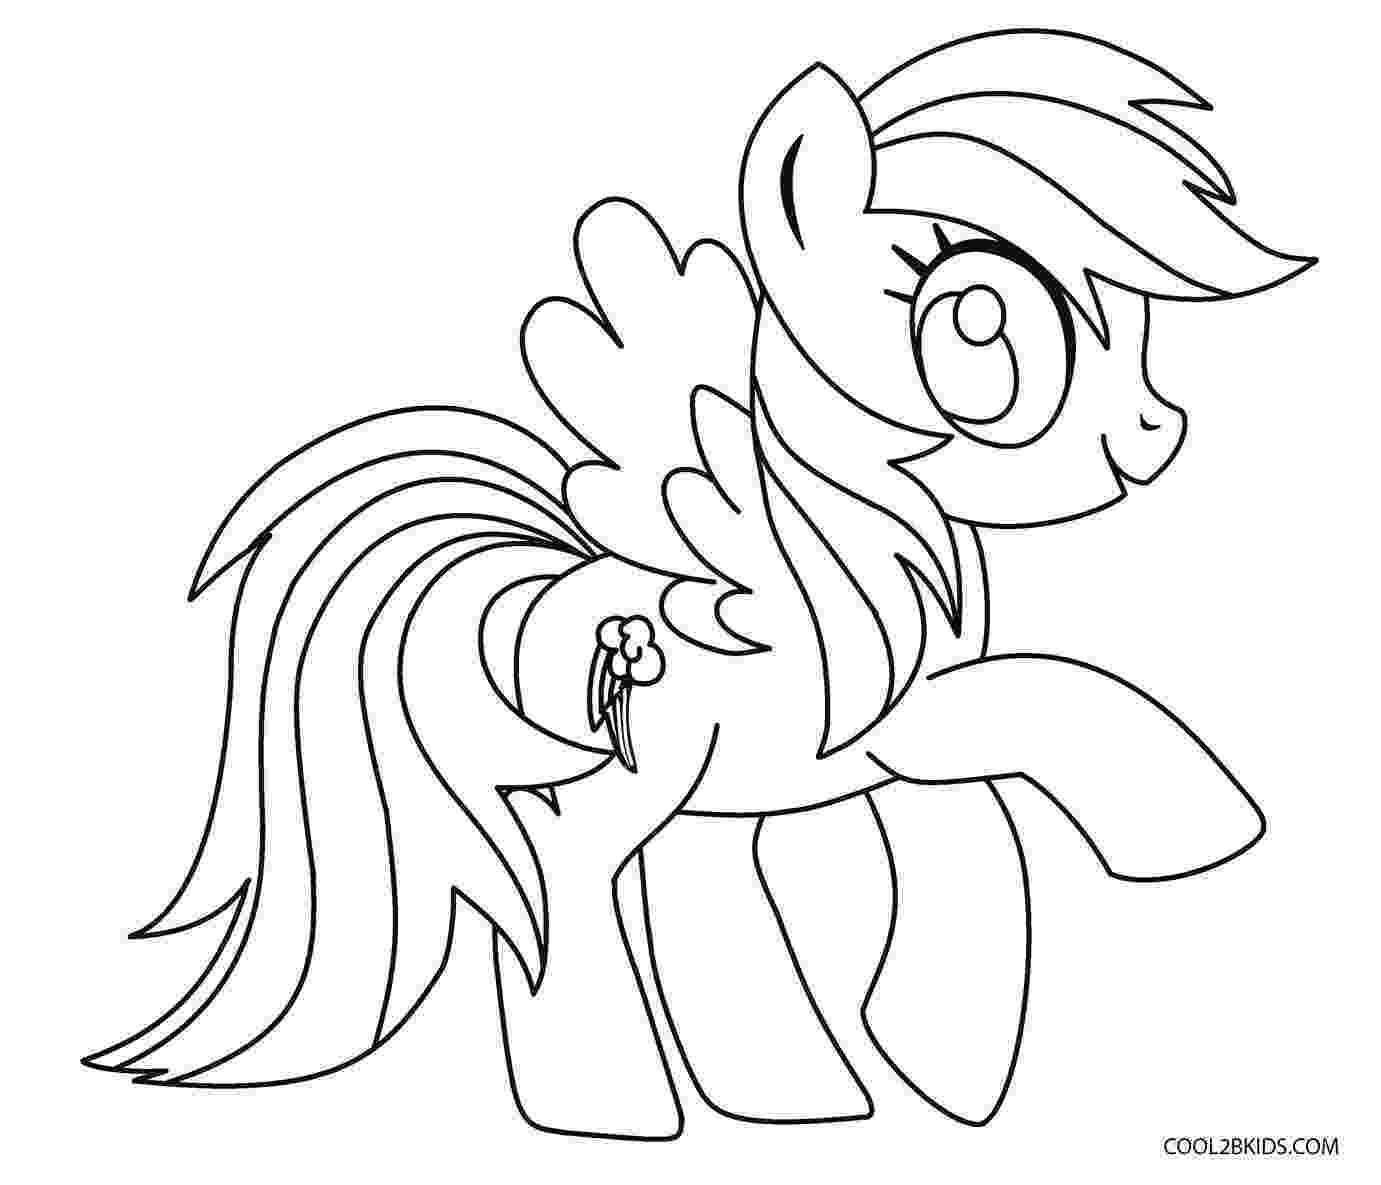 my little pony coloring pages free printable fun learn free worksheets for kid my little pony free free pages coloring my little printable pony